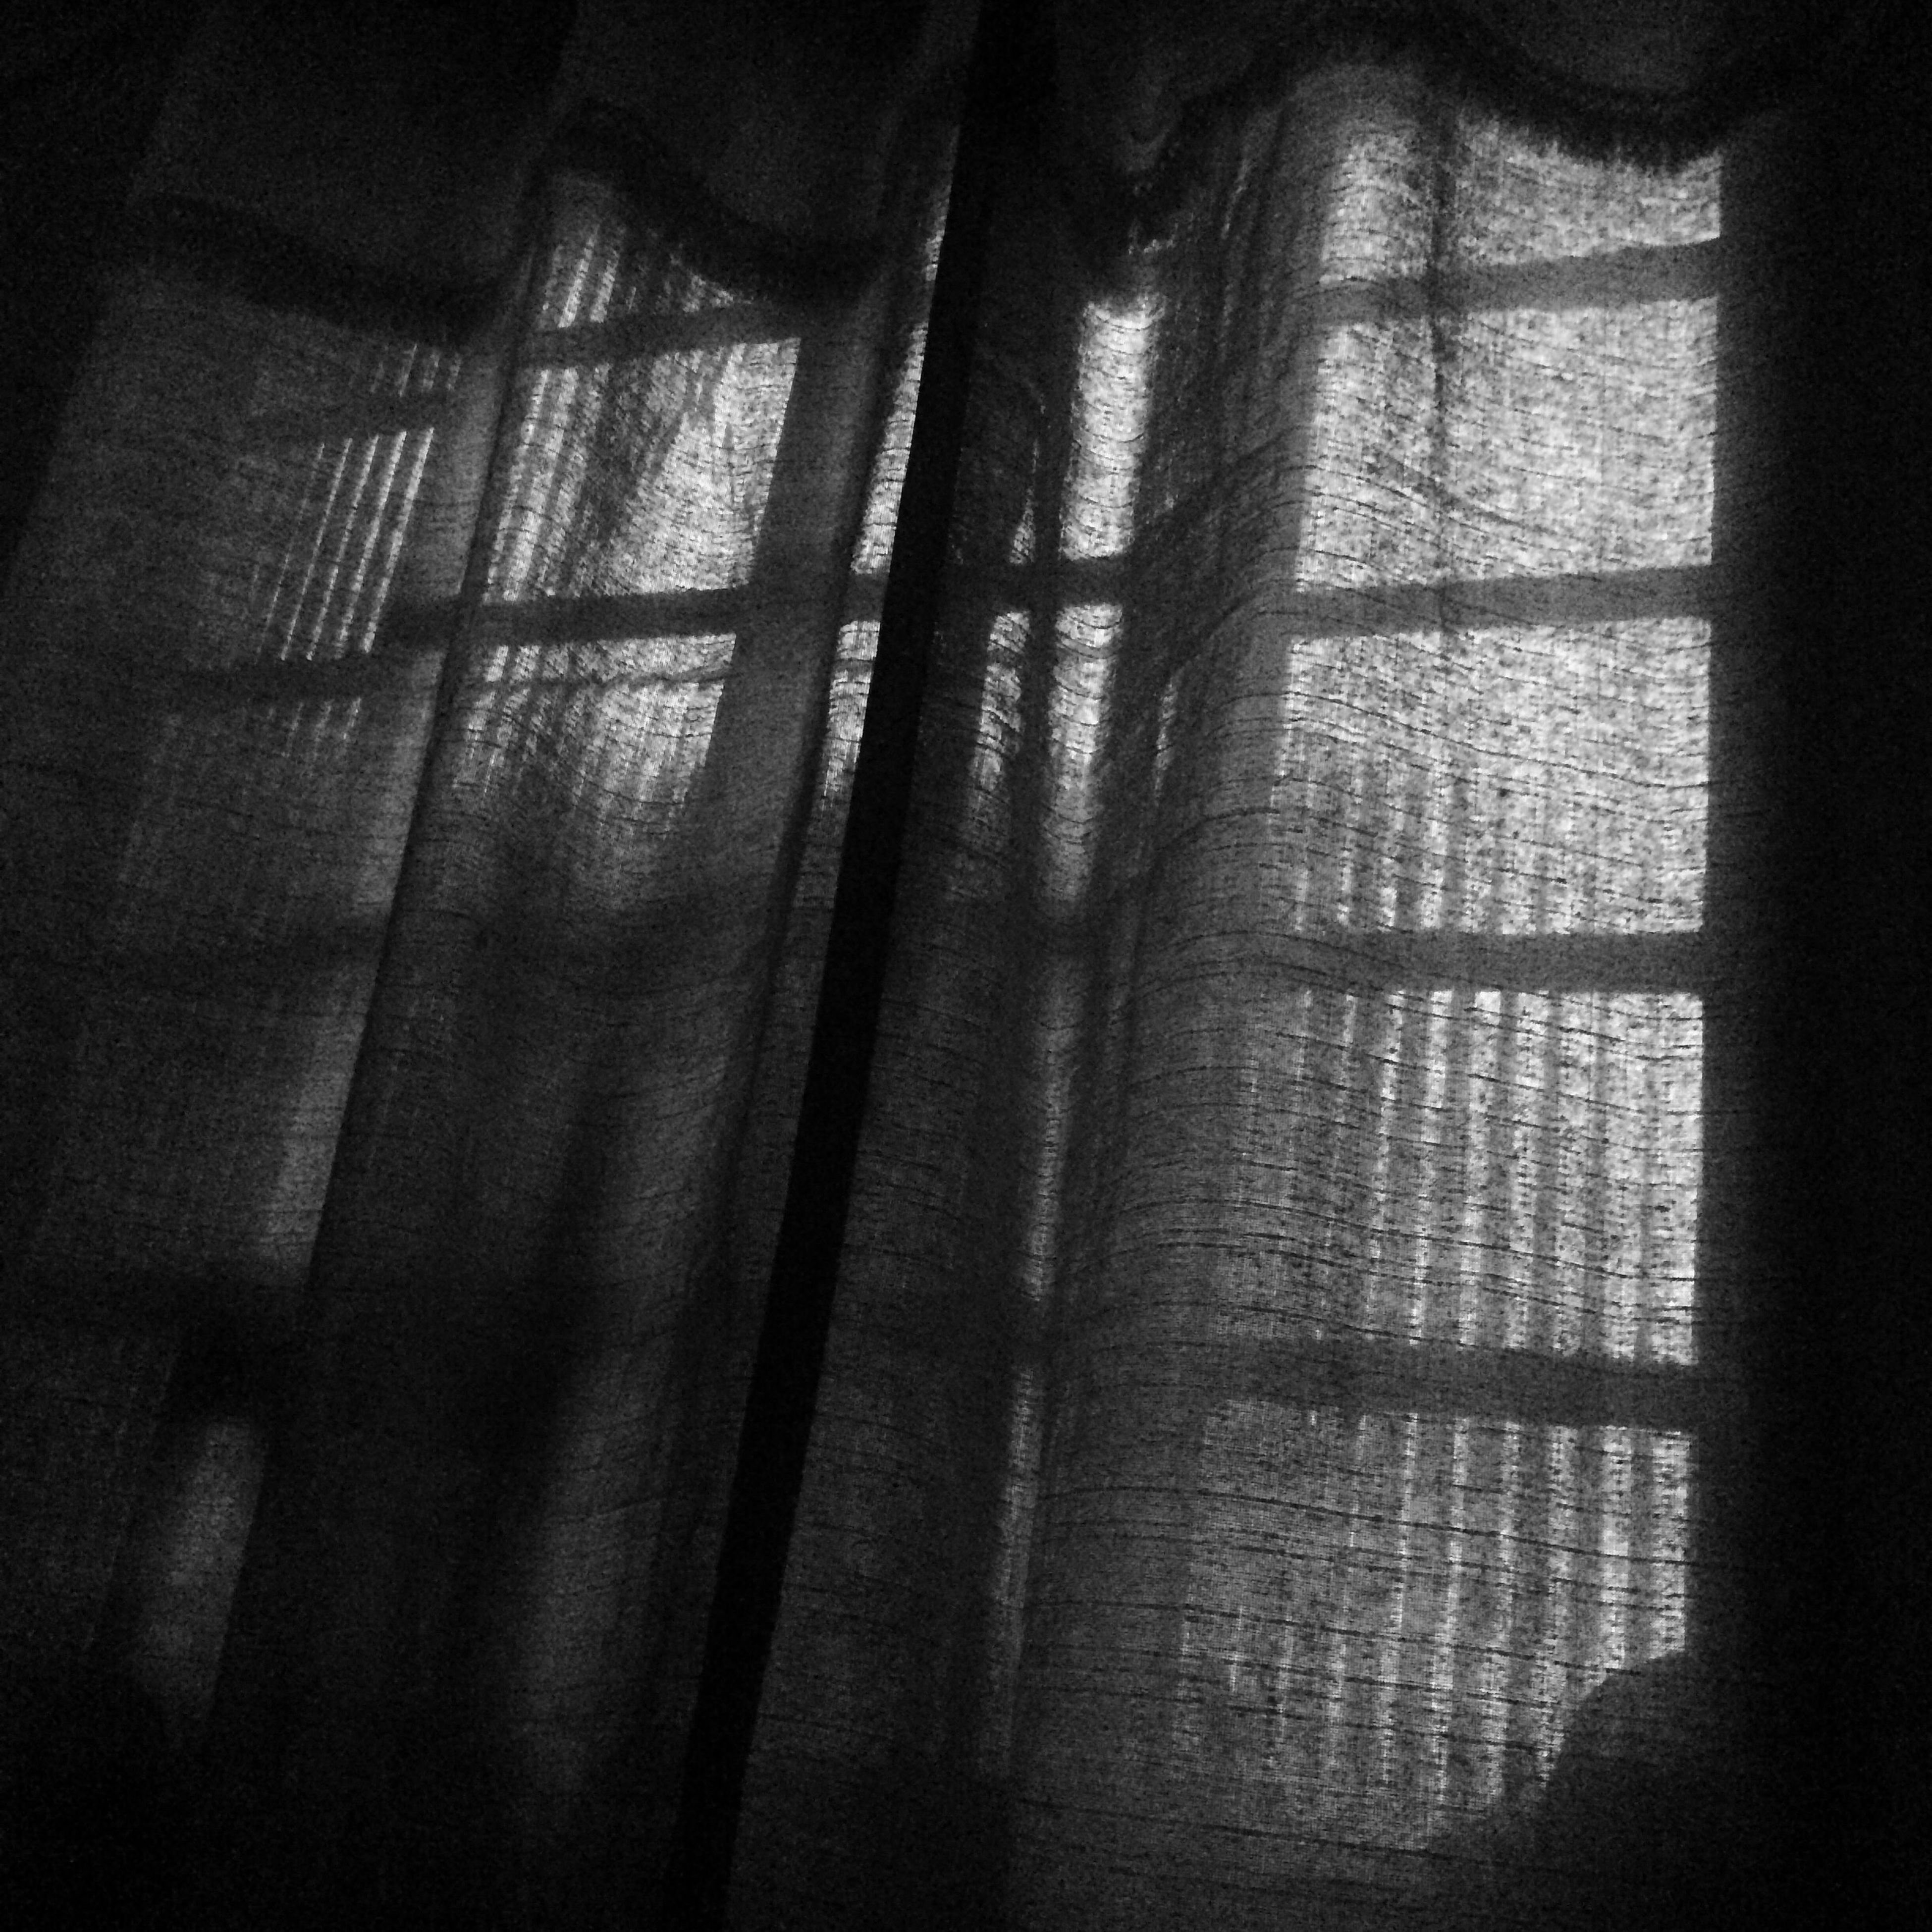 indoors, window, full frame, backgrounds, curtain, fabric, window frame, messy, no people